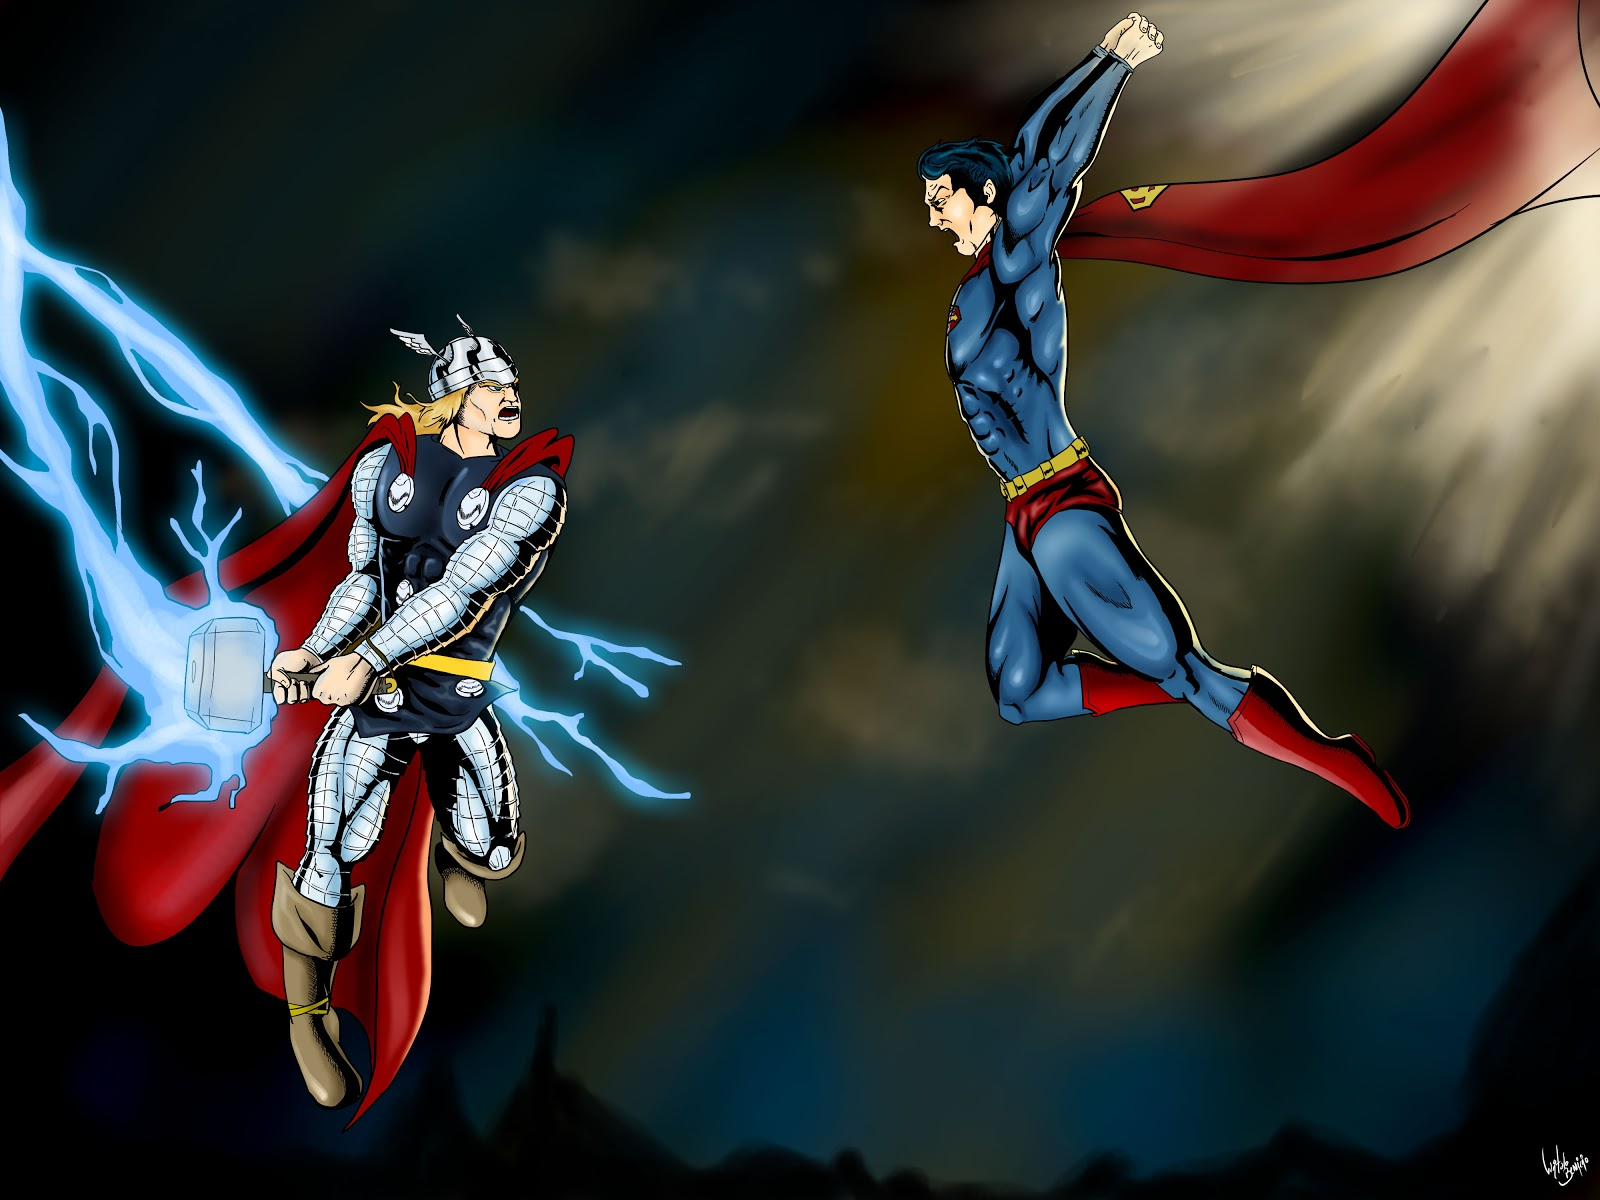 Bytes and banter 7 superman vs thor wednesday 12 december 2012 voltagebd Choice Image